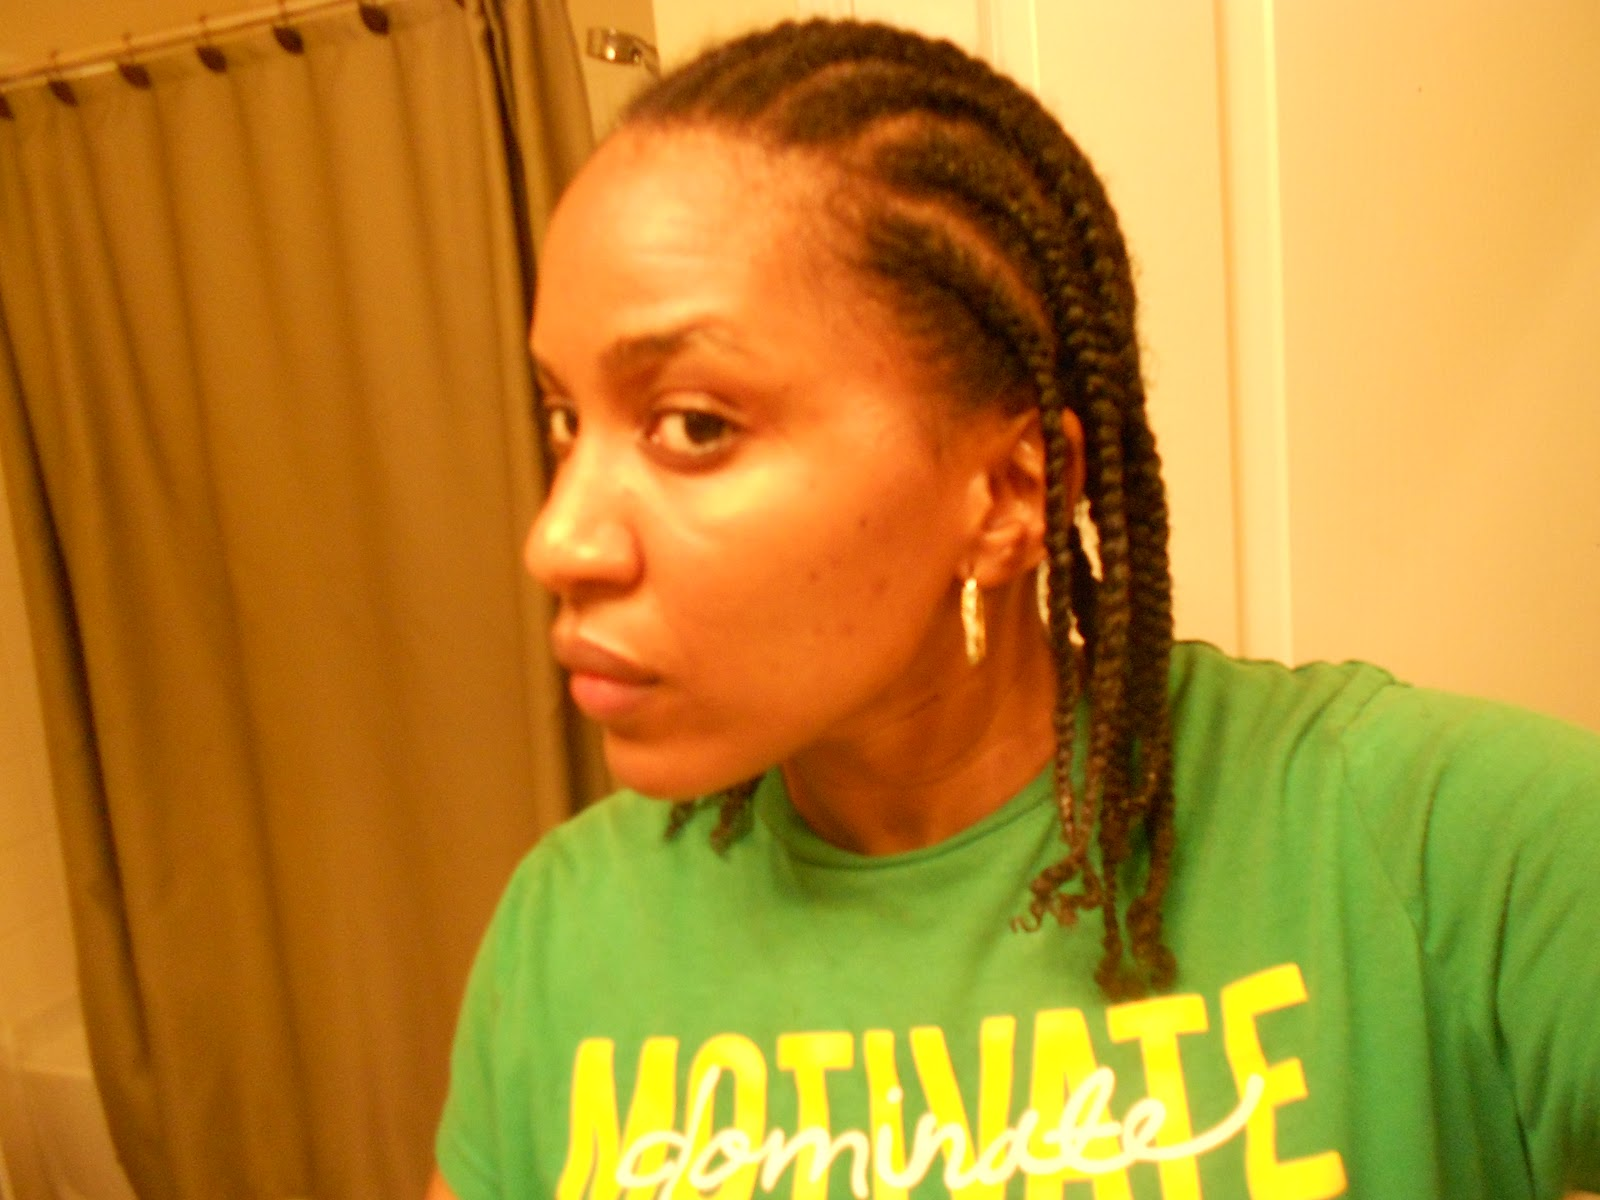 Quickest Crochet Braids : ... braids upward and crocheted my curly synthetic braiding hair i then